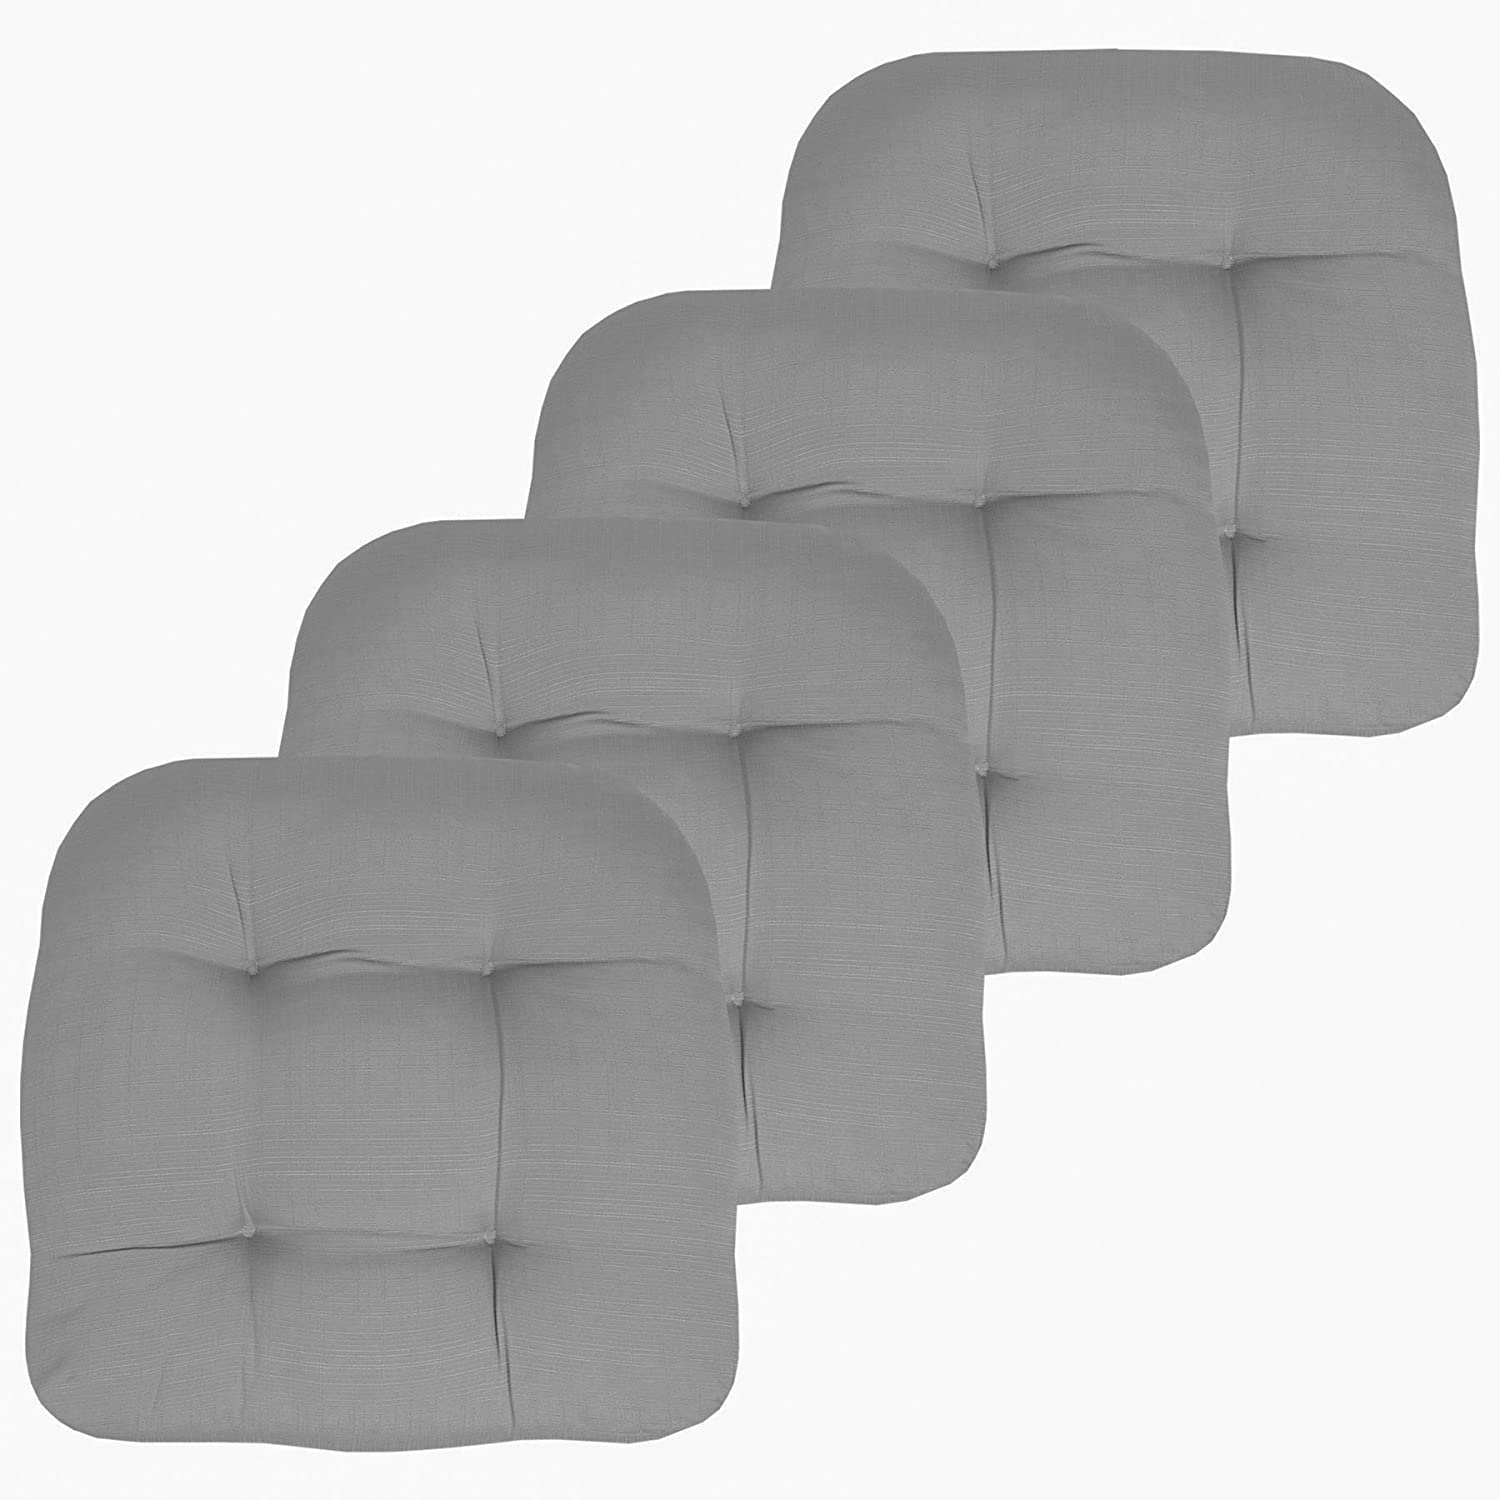 "Sweet Home Collection Patio Cushions Outdoor Chair Pads Premium Comfortable Thick Fiber Fill Tufted 19"" x 19"" Seat Cover, 4 Pack, Silver"